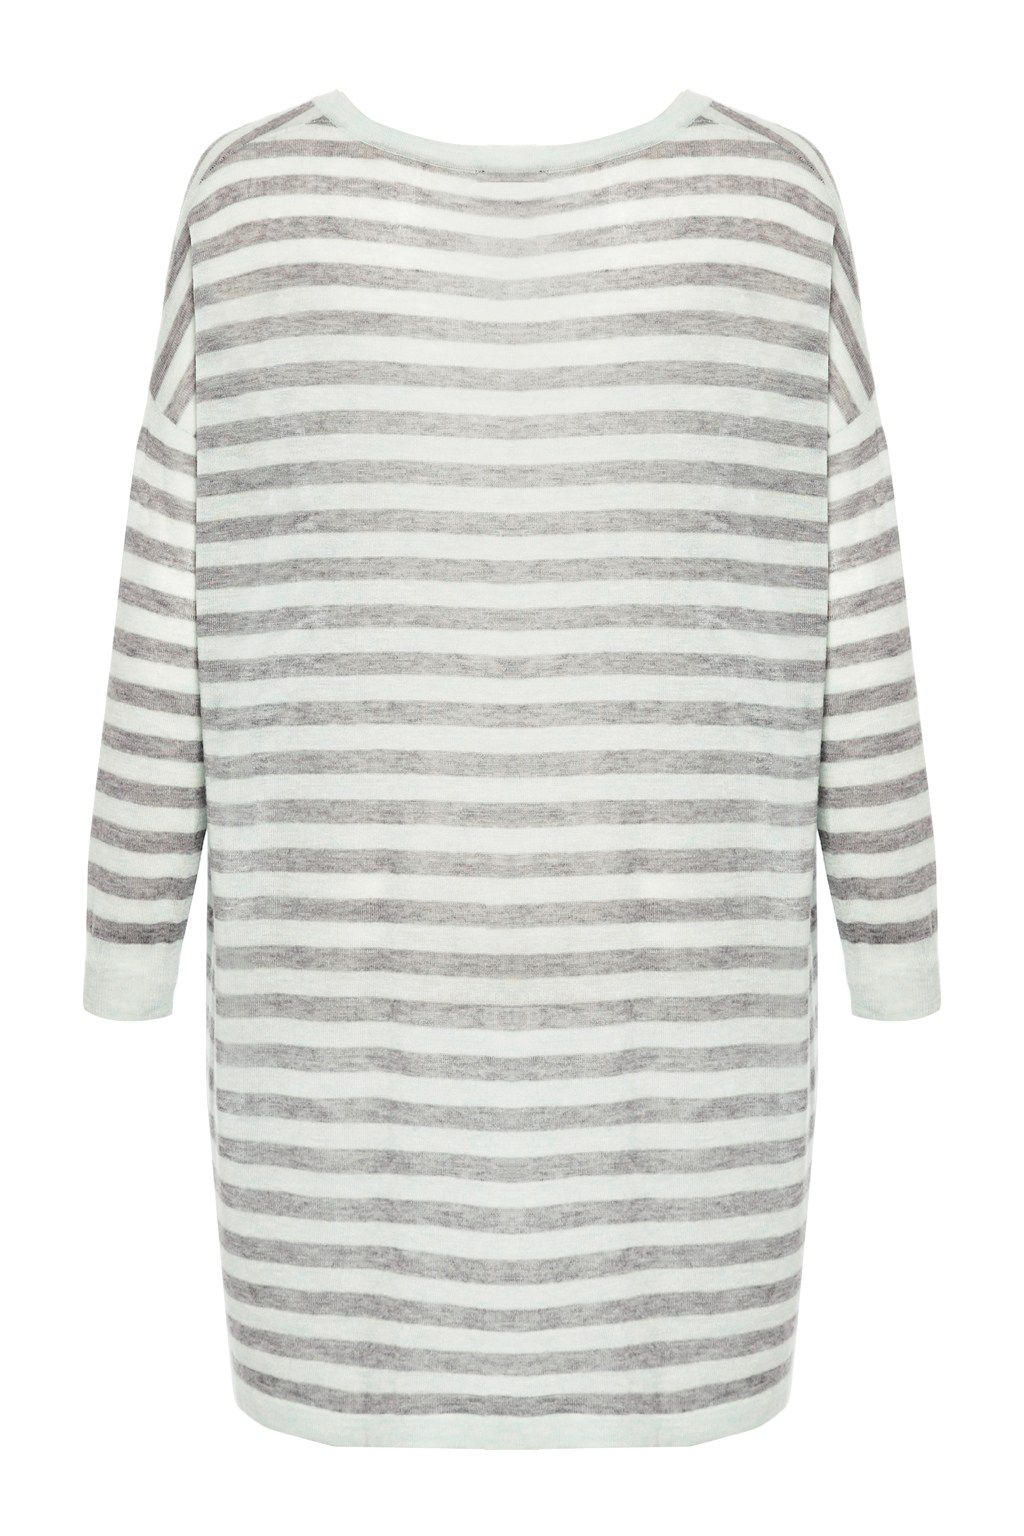 Marella stripe v neck top